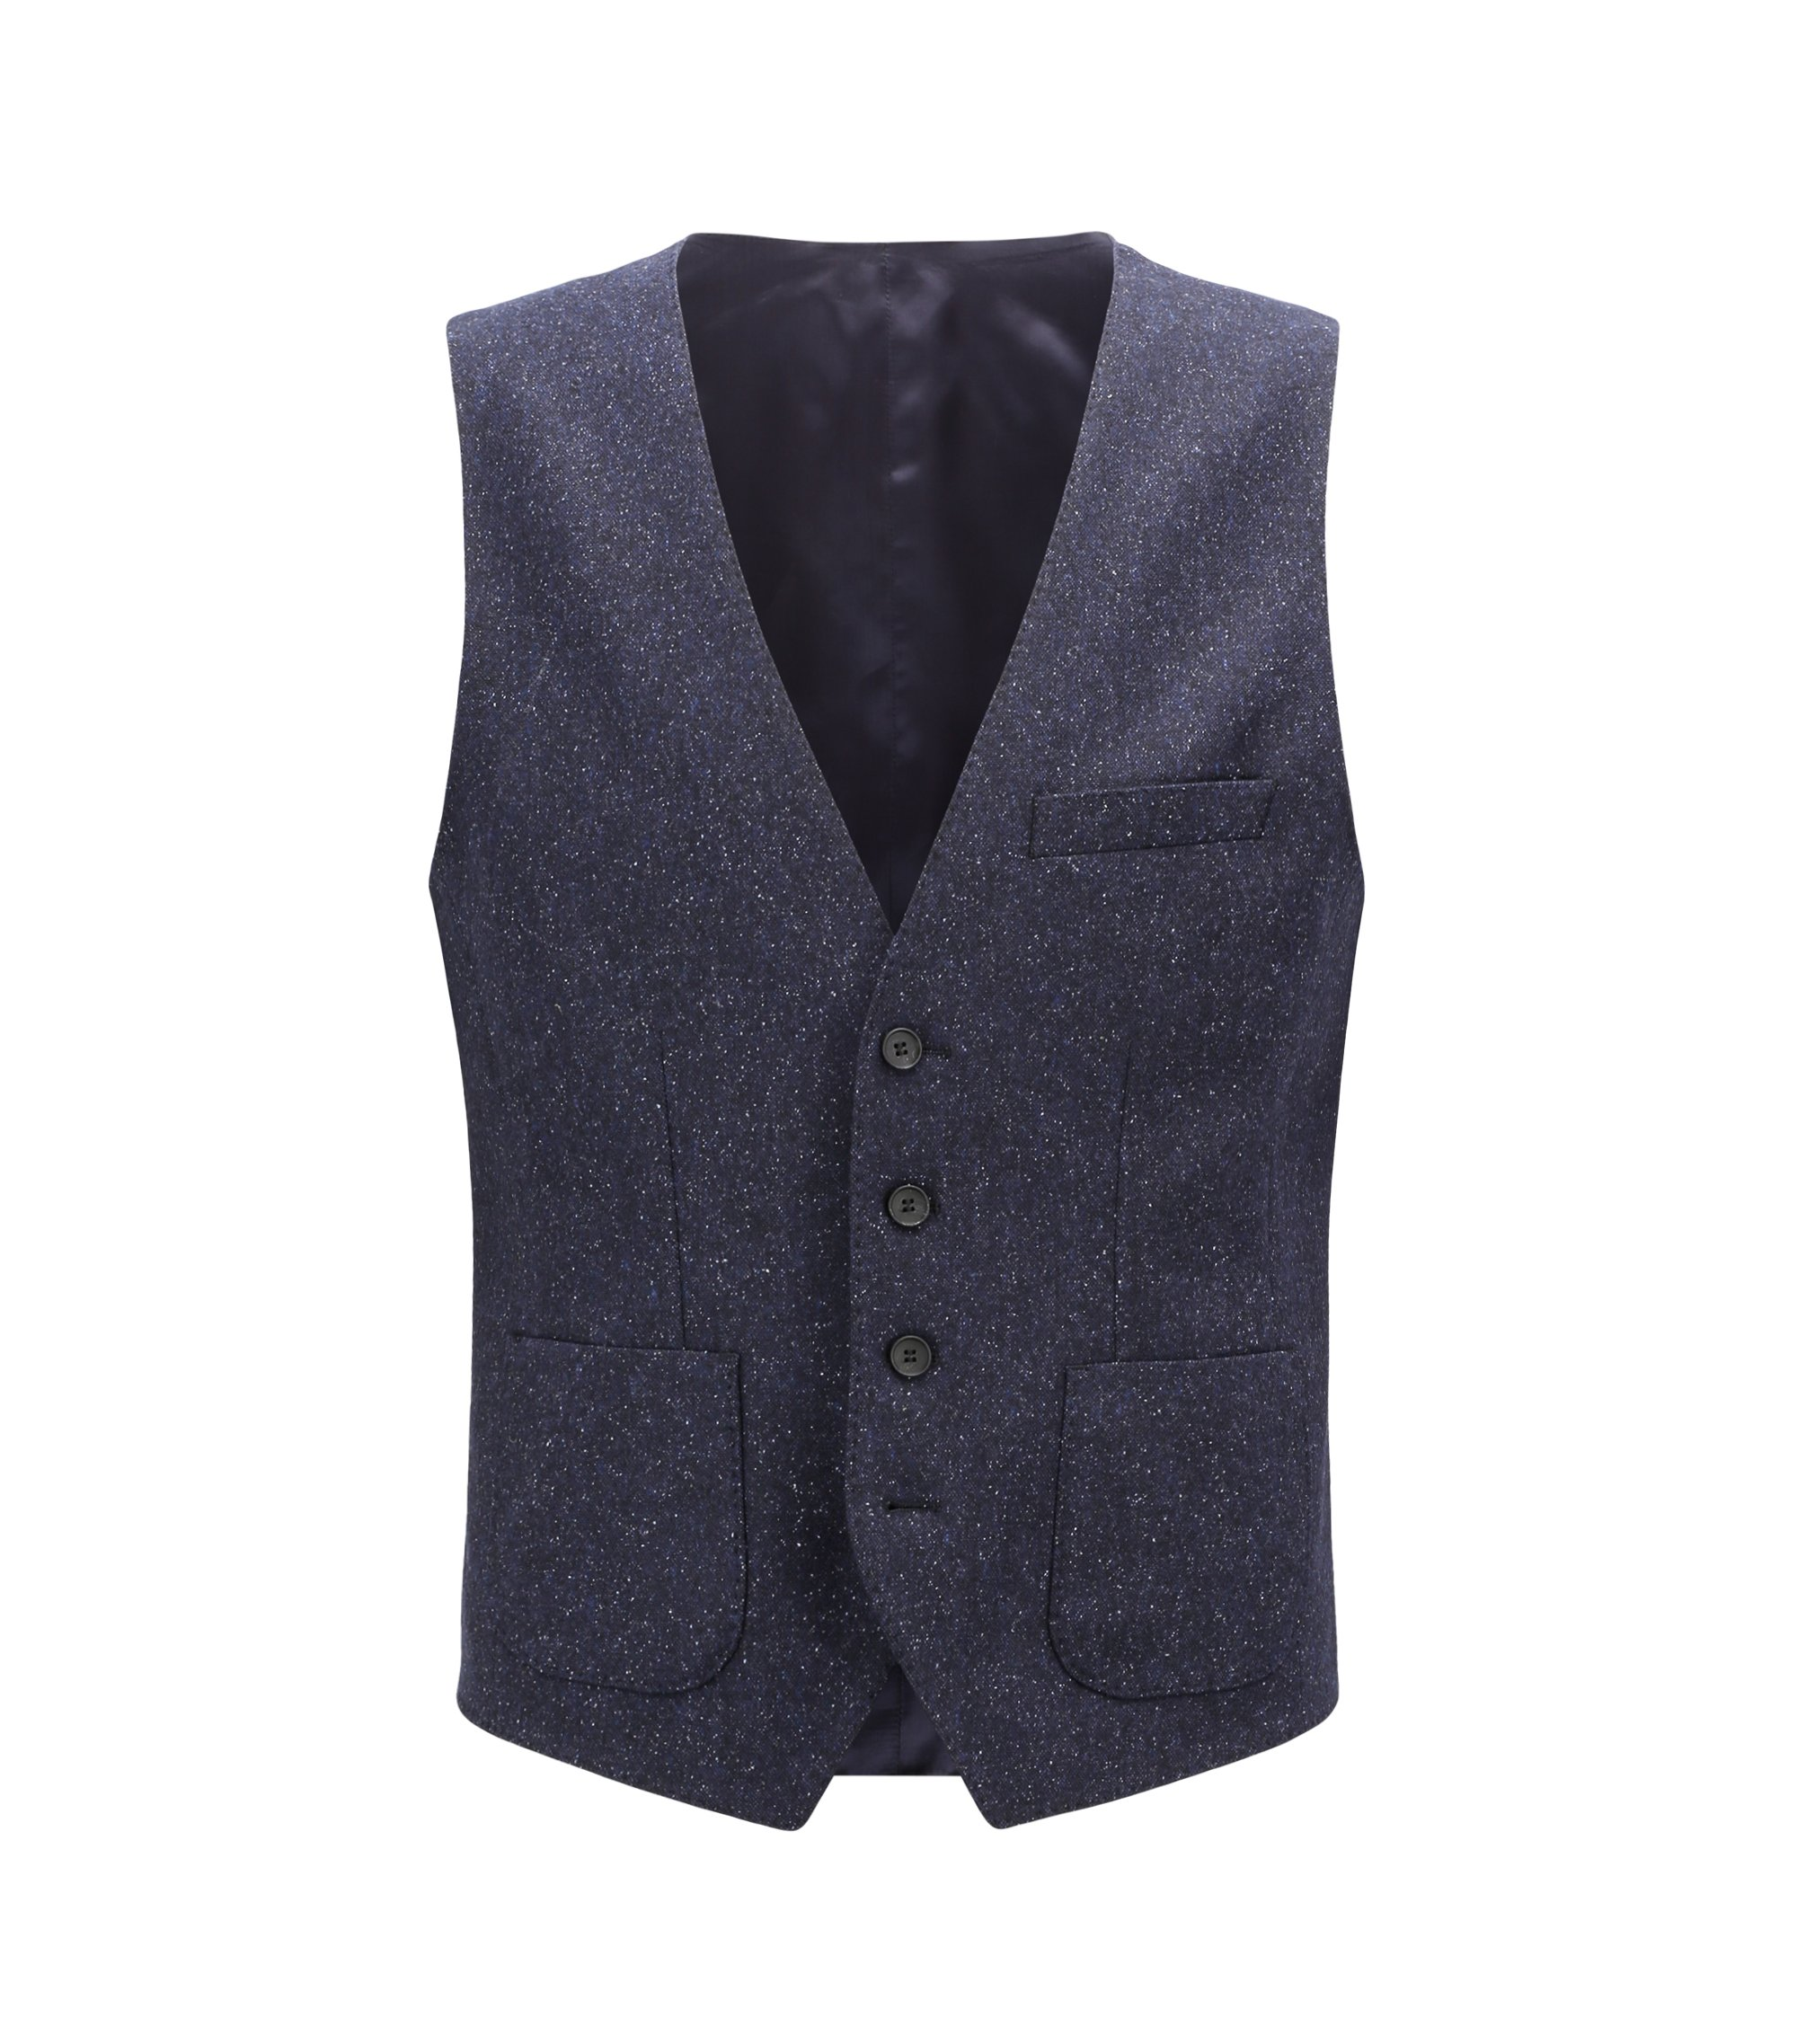 Gilet slim fit in tweed di misto lana vergine, Blu scuro